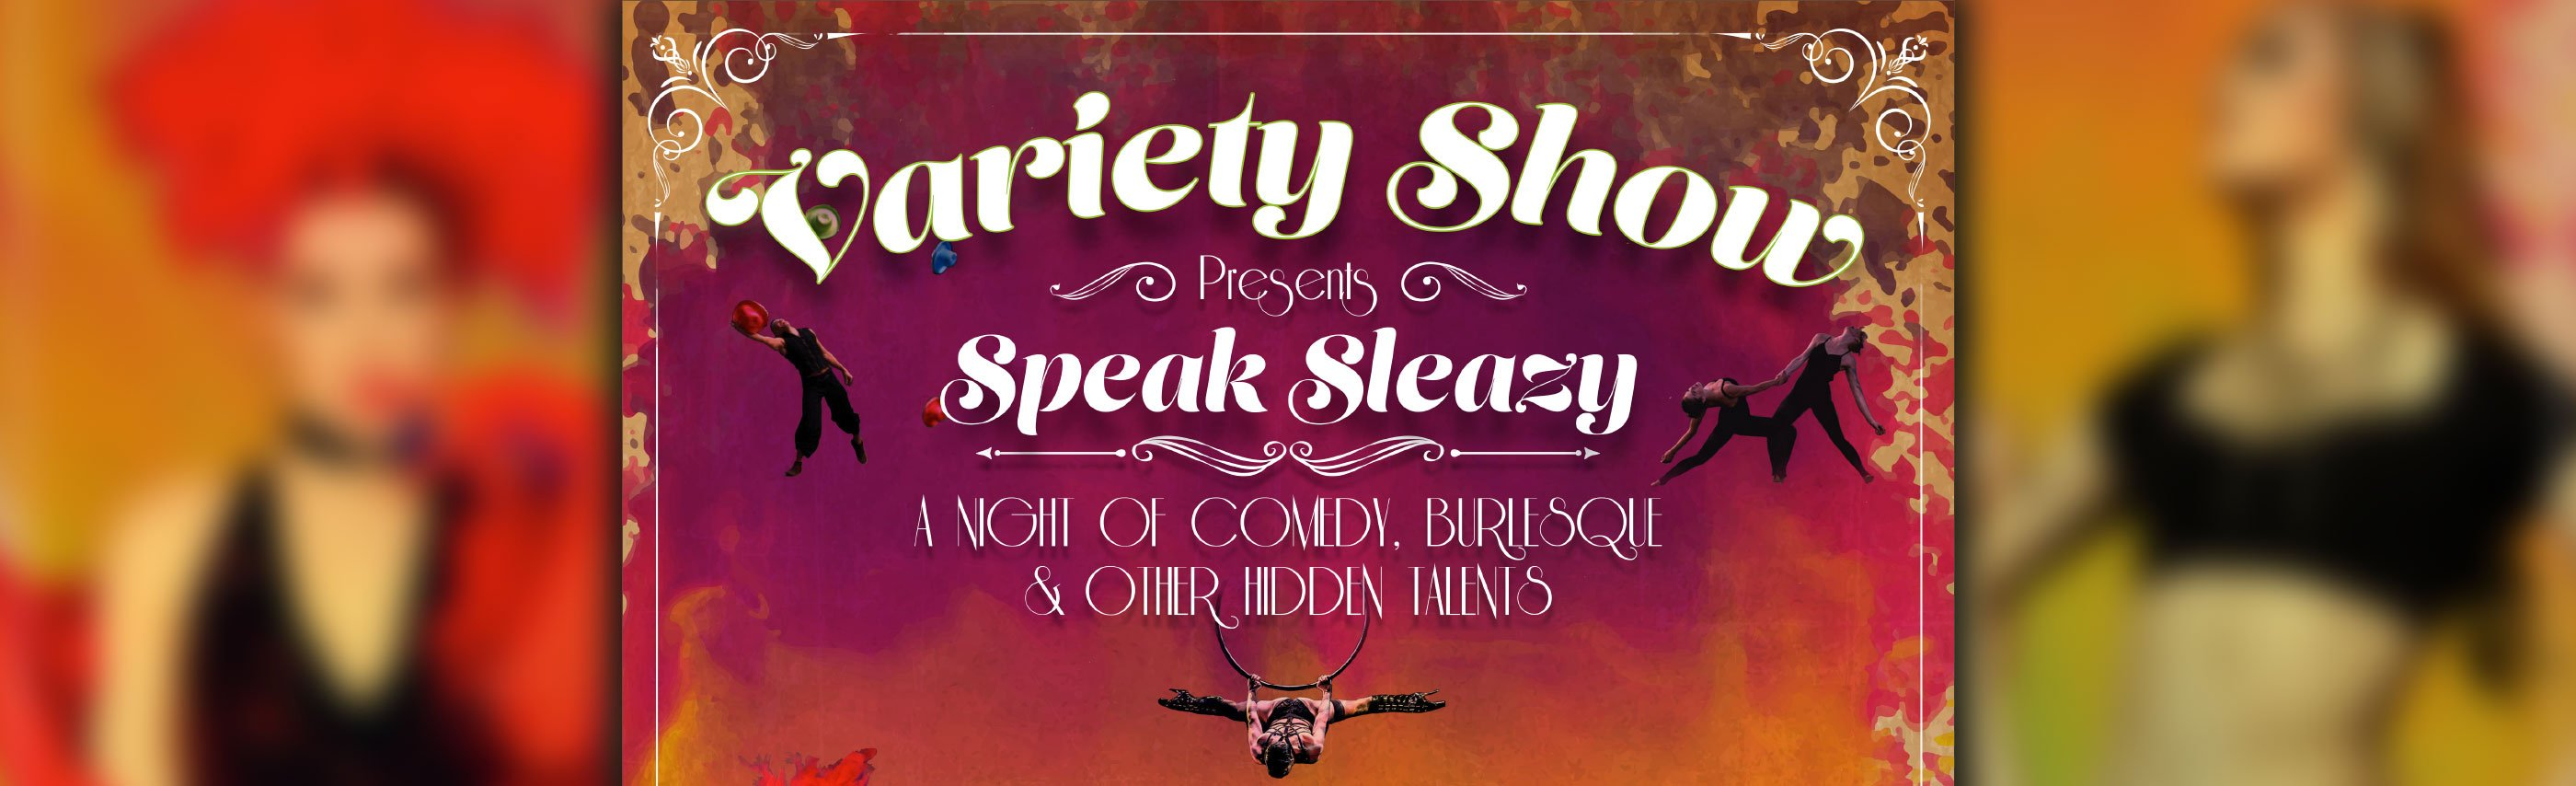 ExpiredThe Variety Show Presents: Speak Sleazy, a Night of Comedy, Burlesque, and other Hidden Talents